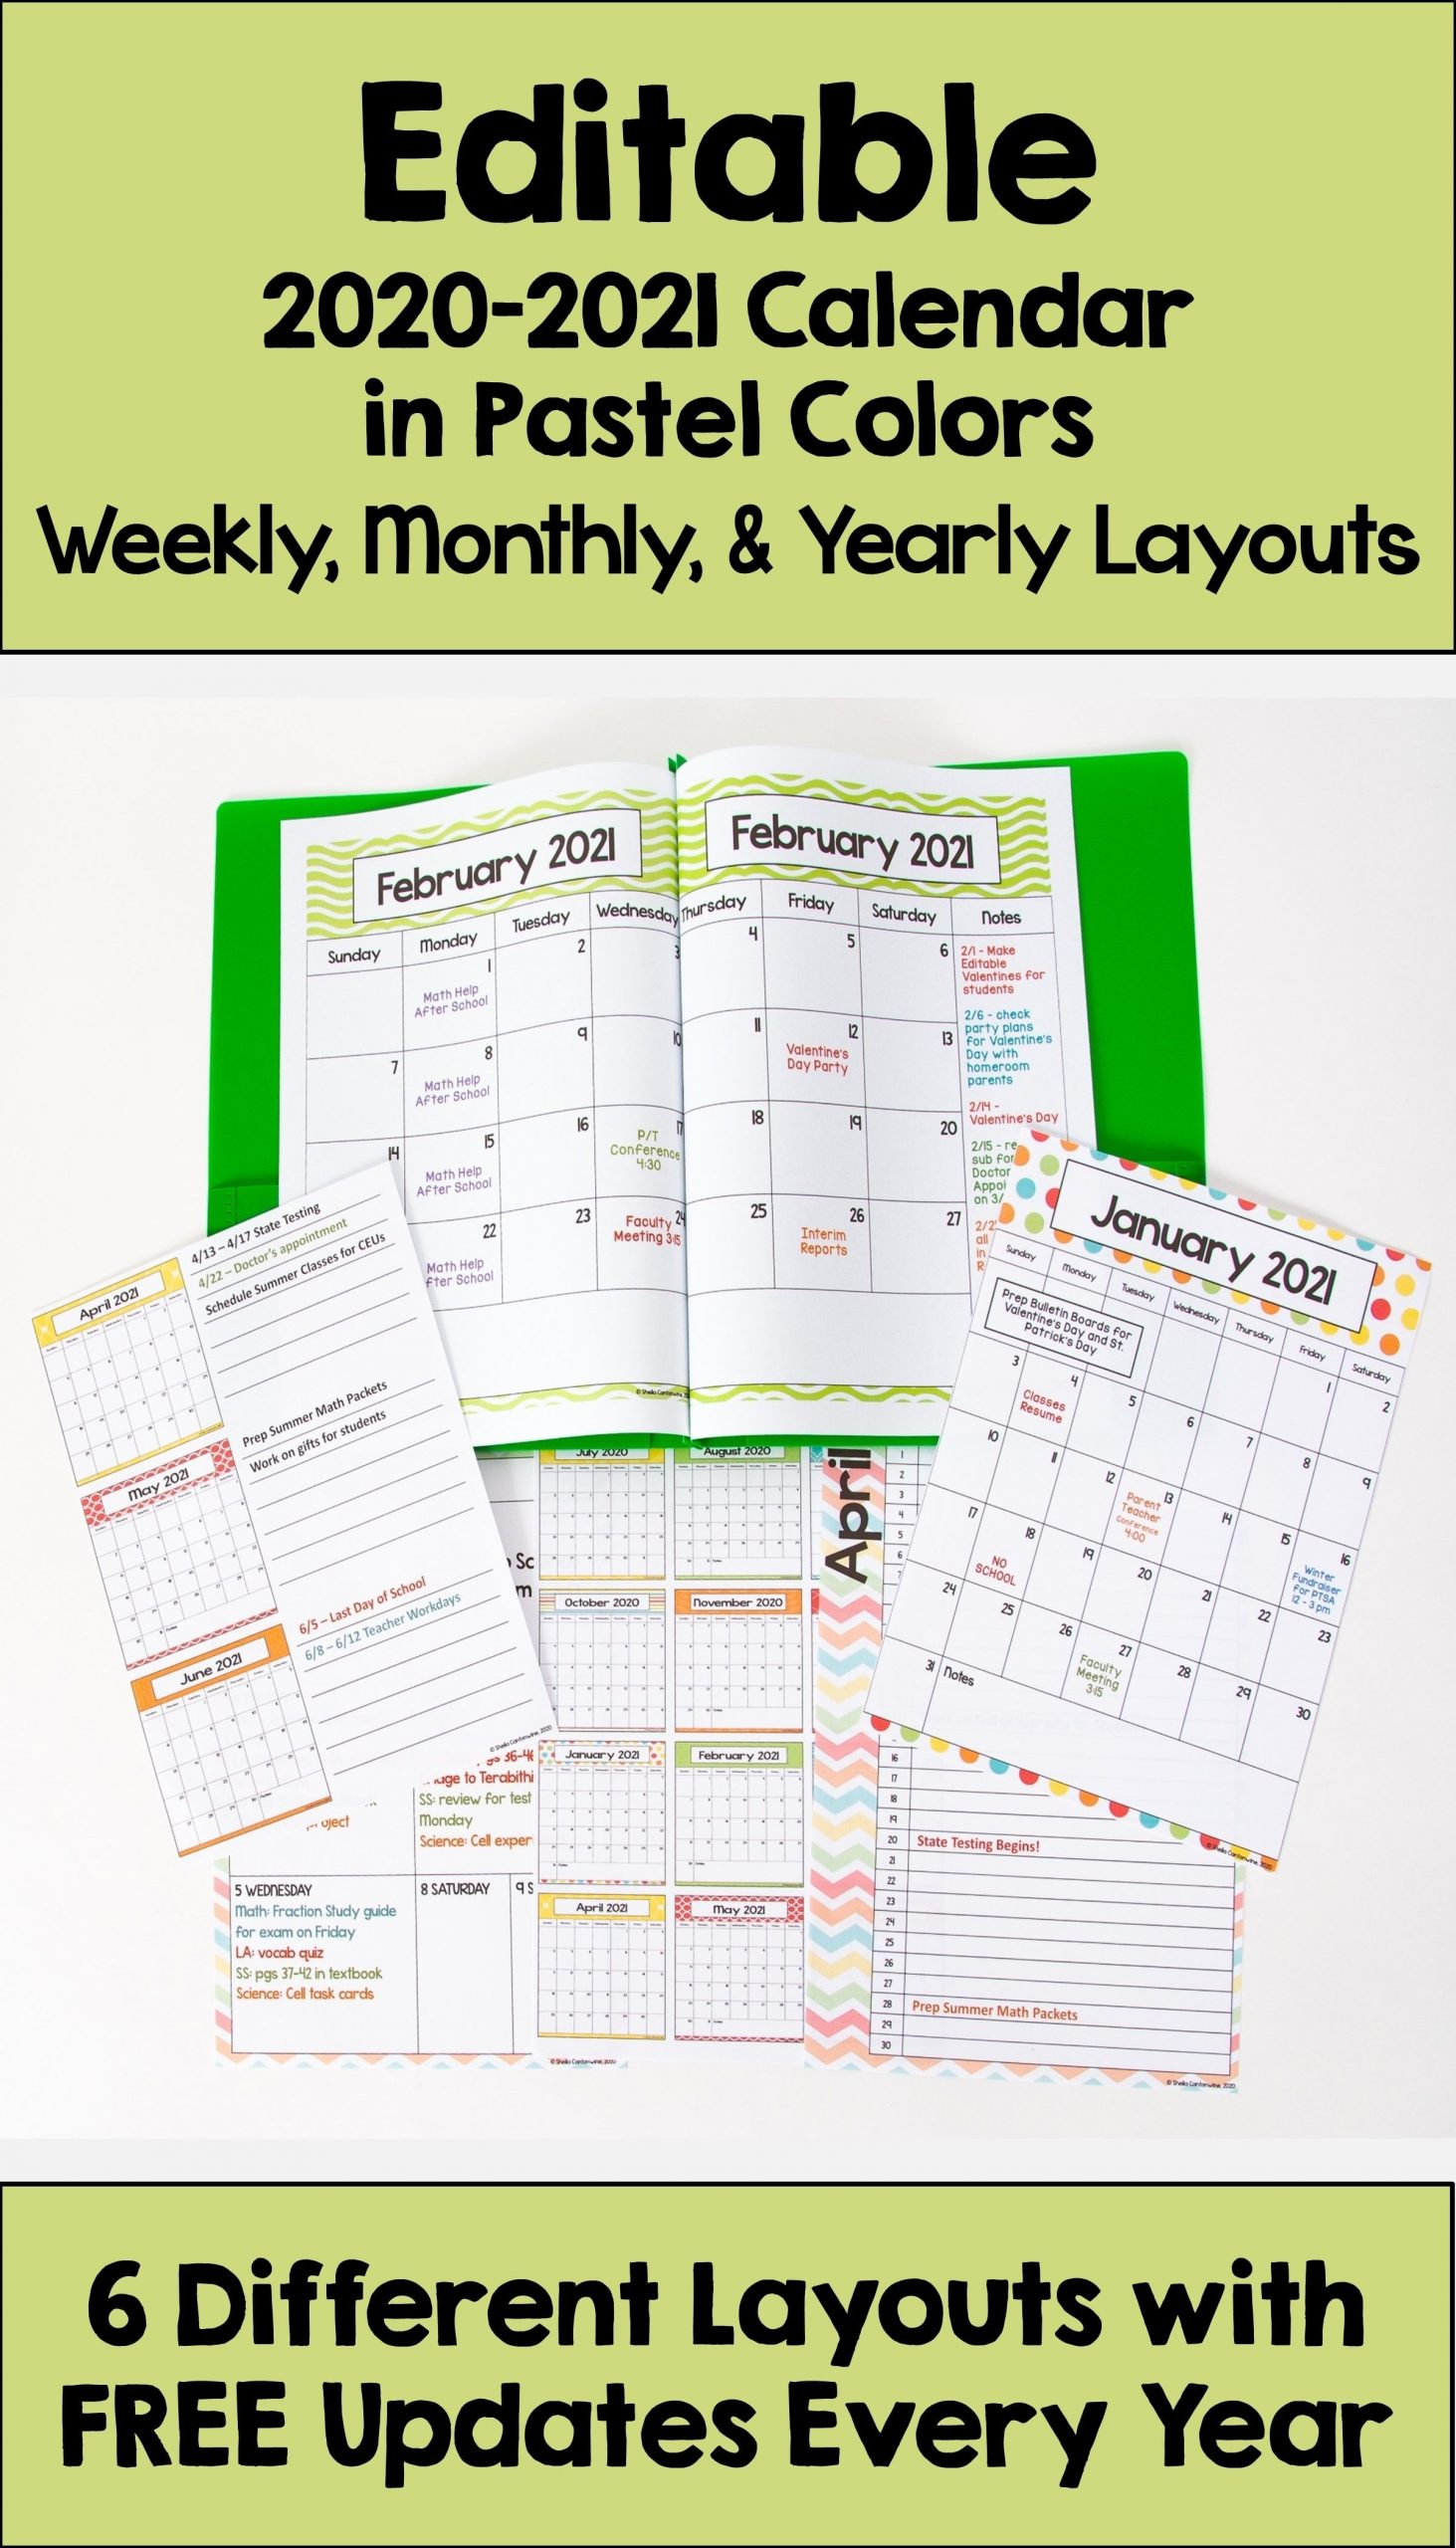 Editable 2020-2021 Pastel Calendar With 6 Layouts And Free